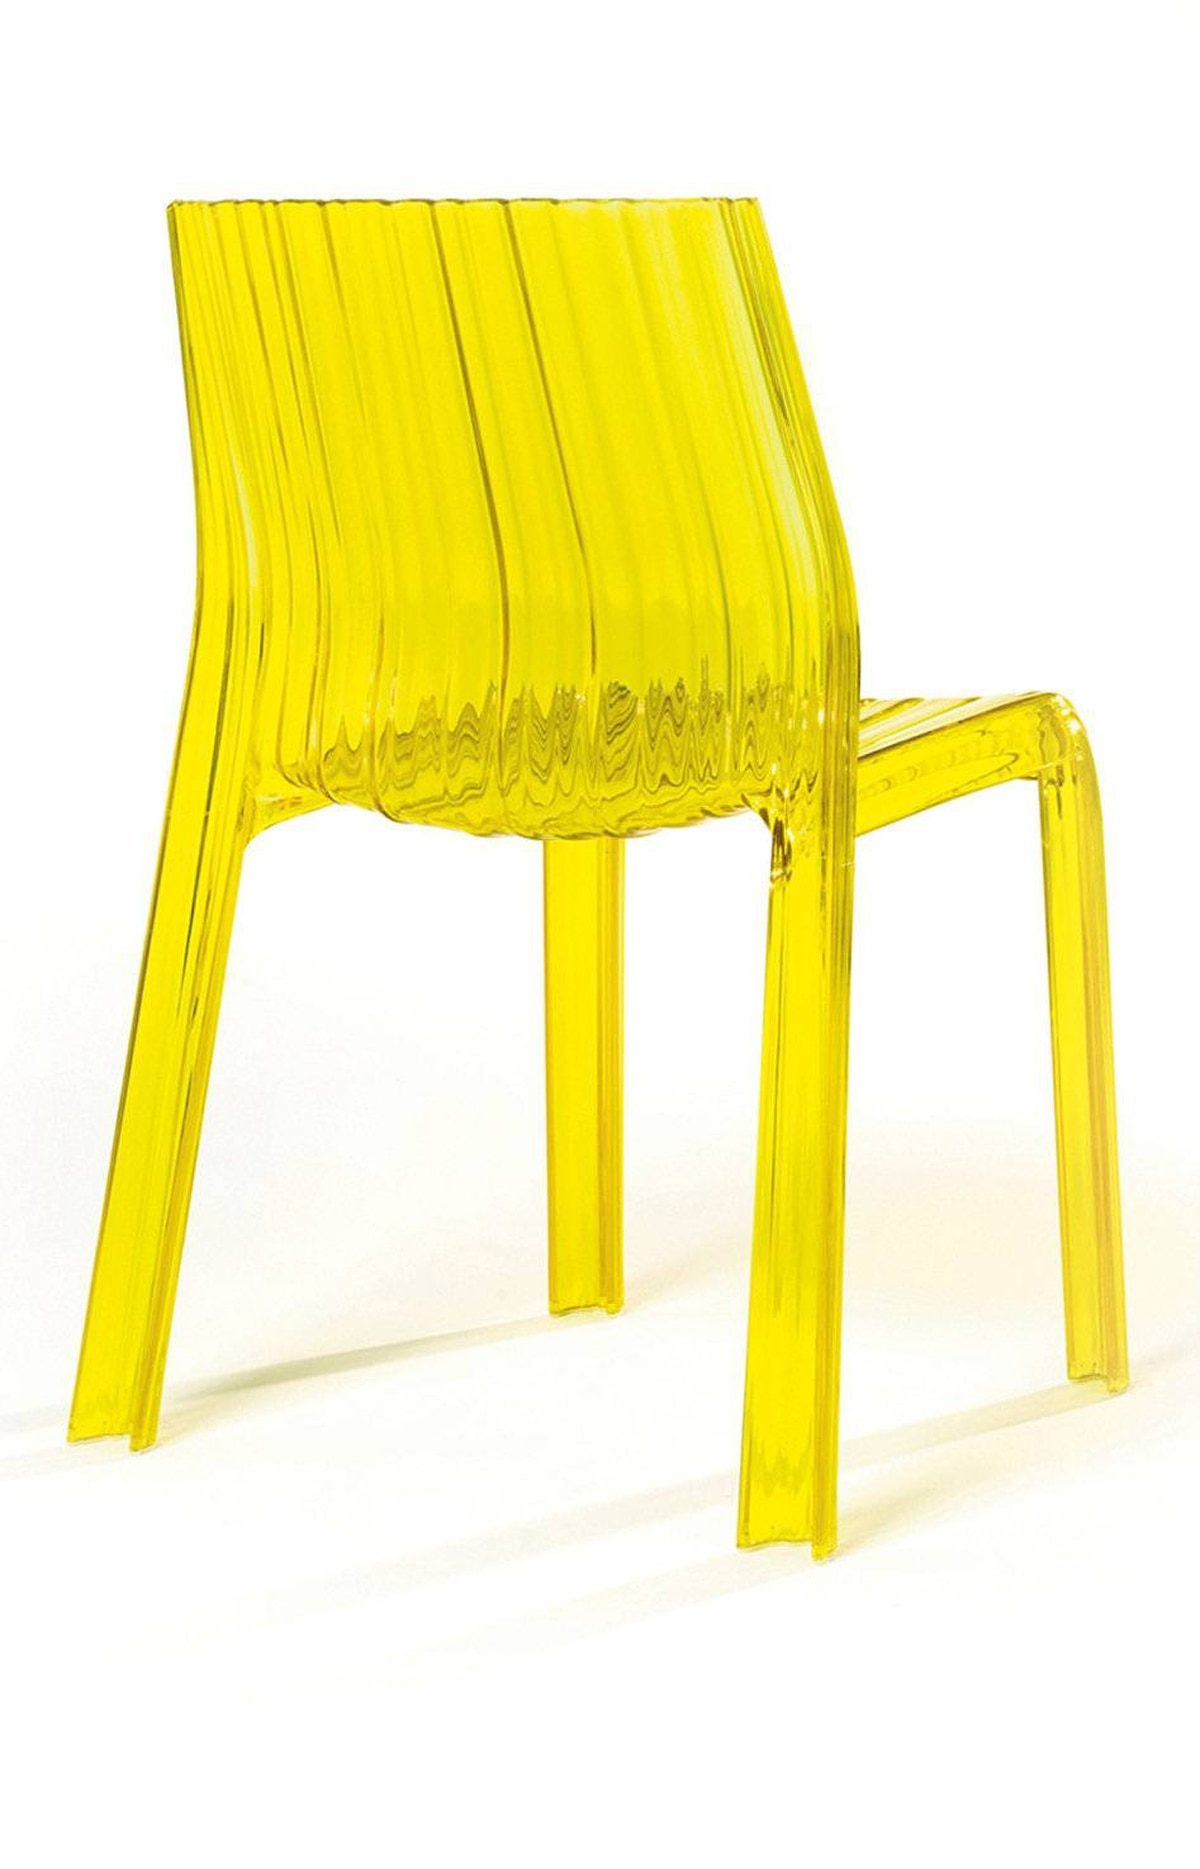 Juice up a front hall, den or terrace with a lemony-yellow pleated Lucite chair suitable for use indoors and out. Kartell's Frilly chair, $329 at Quasi Modo Modern (www.quasimodomodern.com).